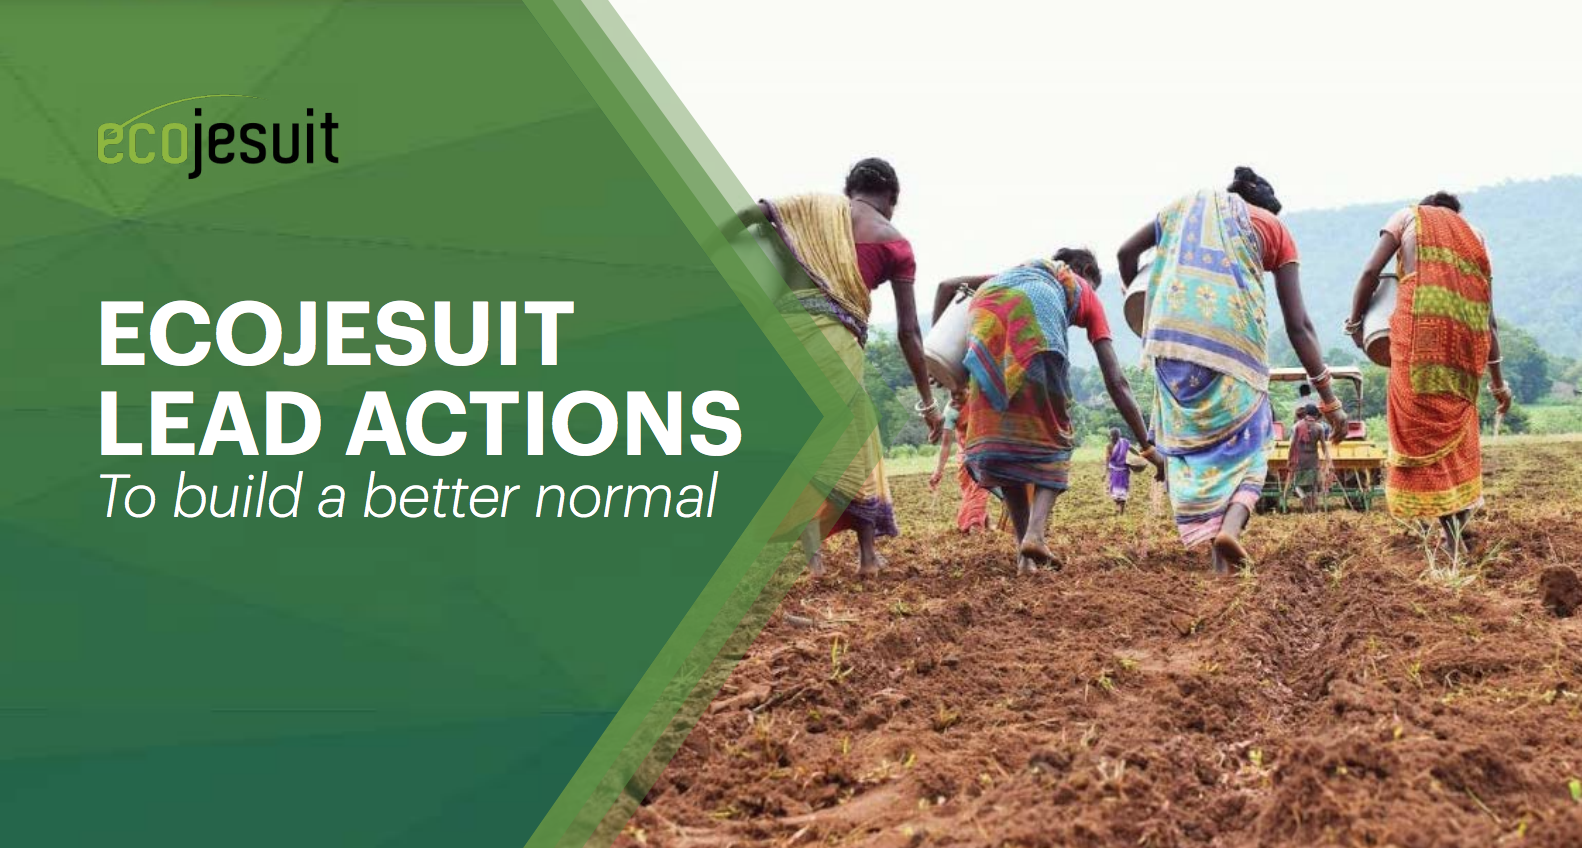 Ecojesuit Lead Actions to build a better normal